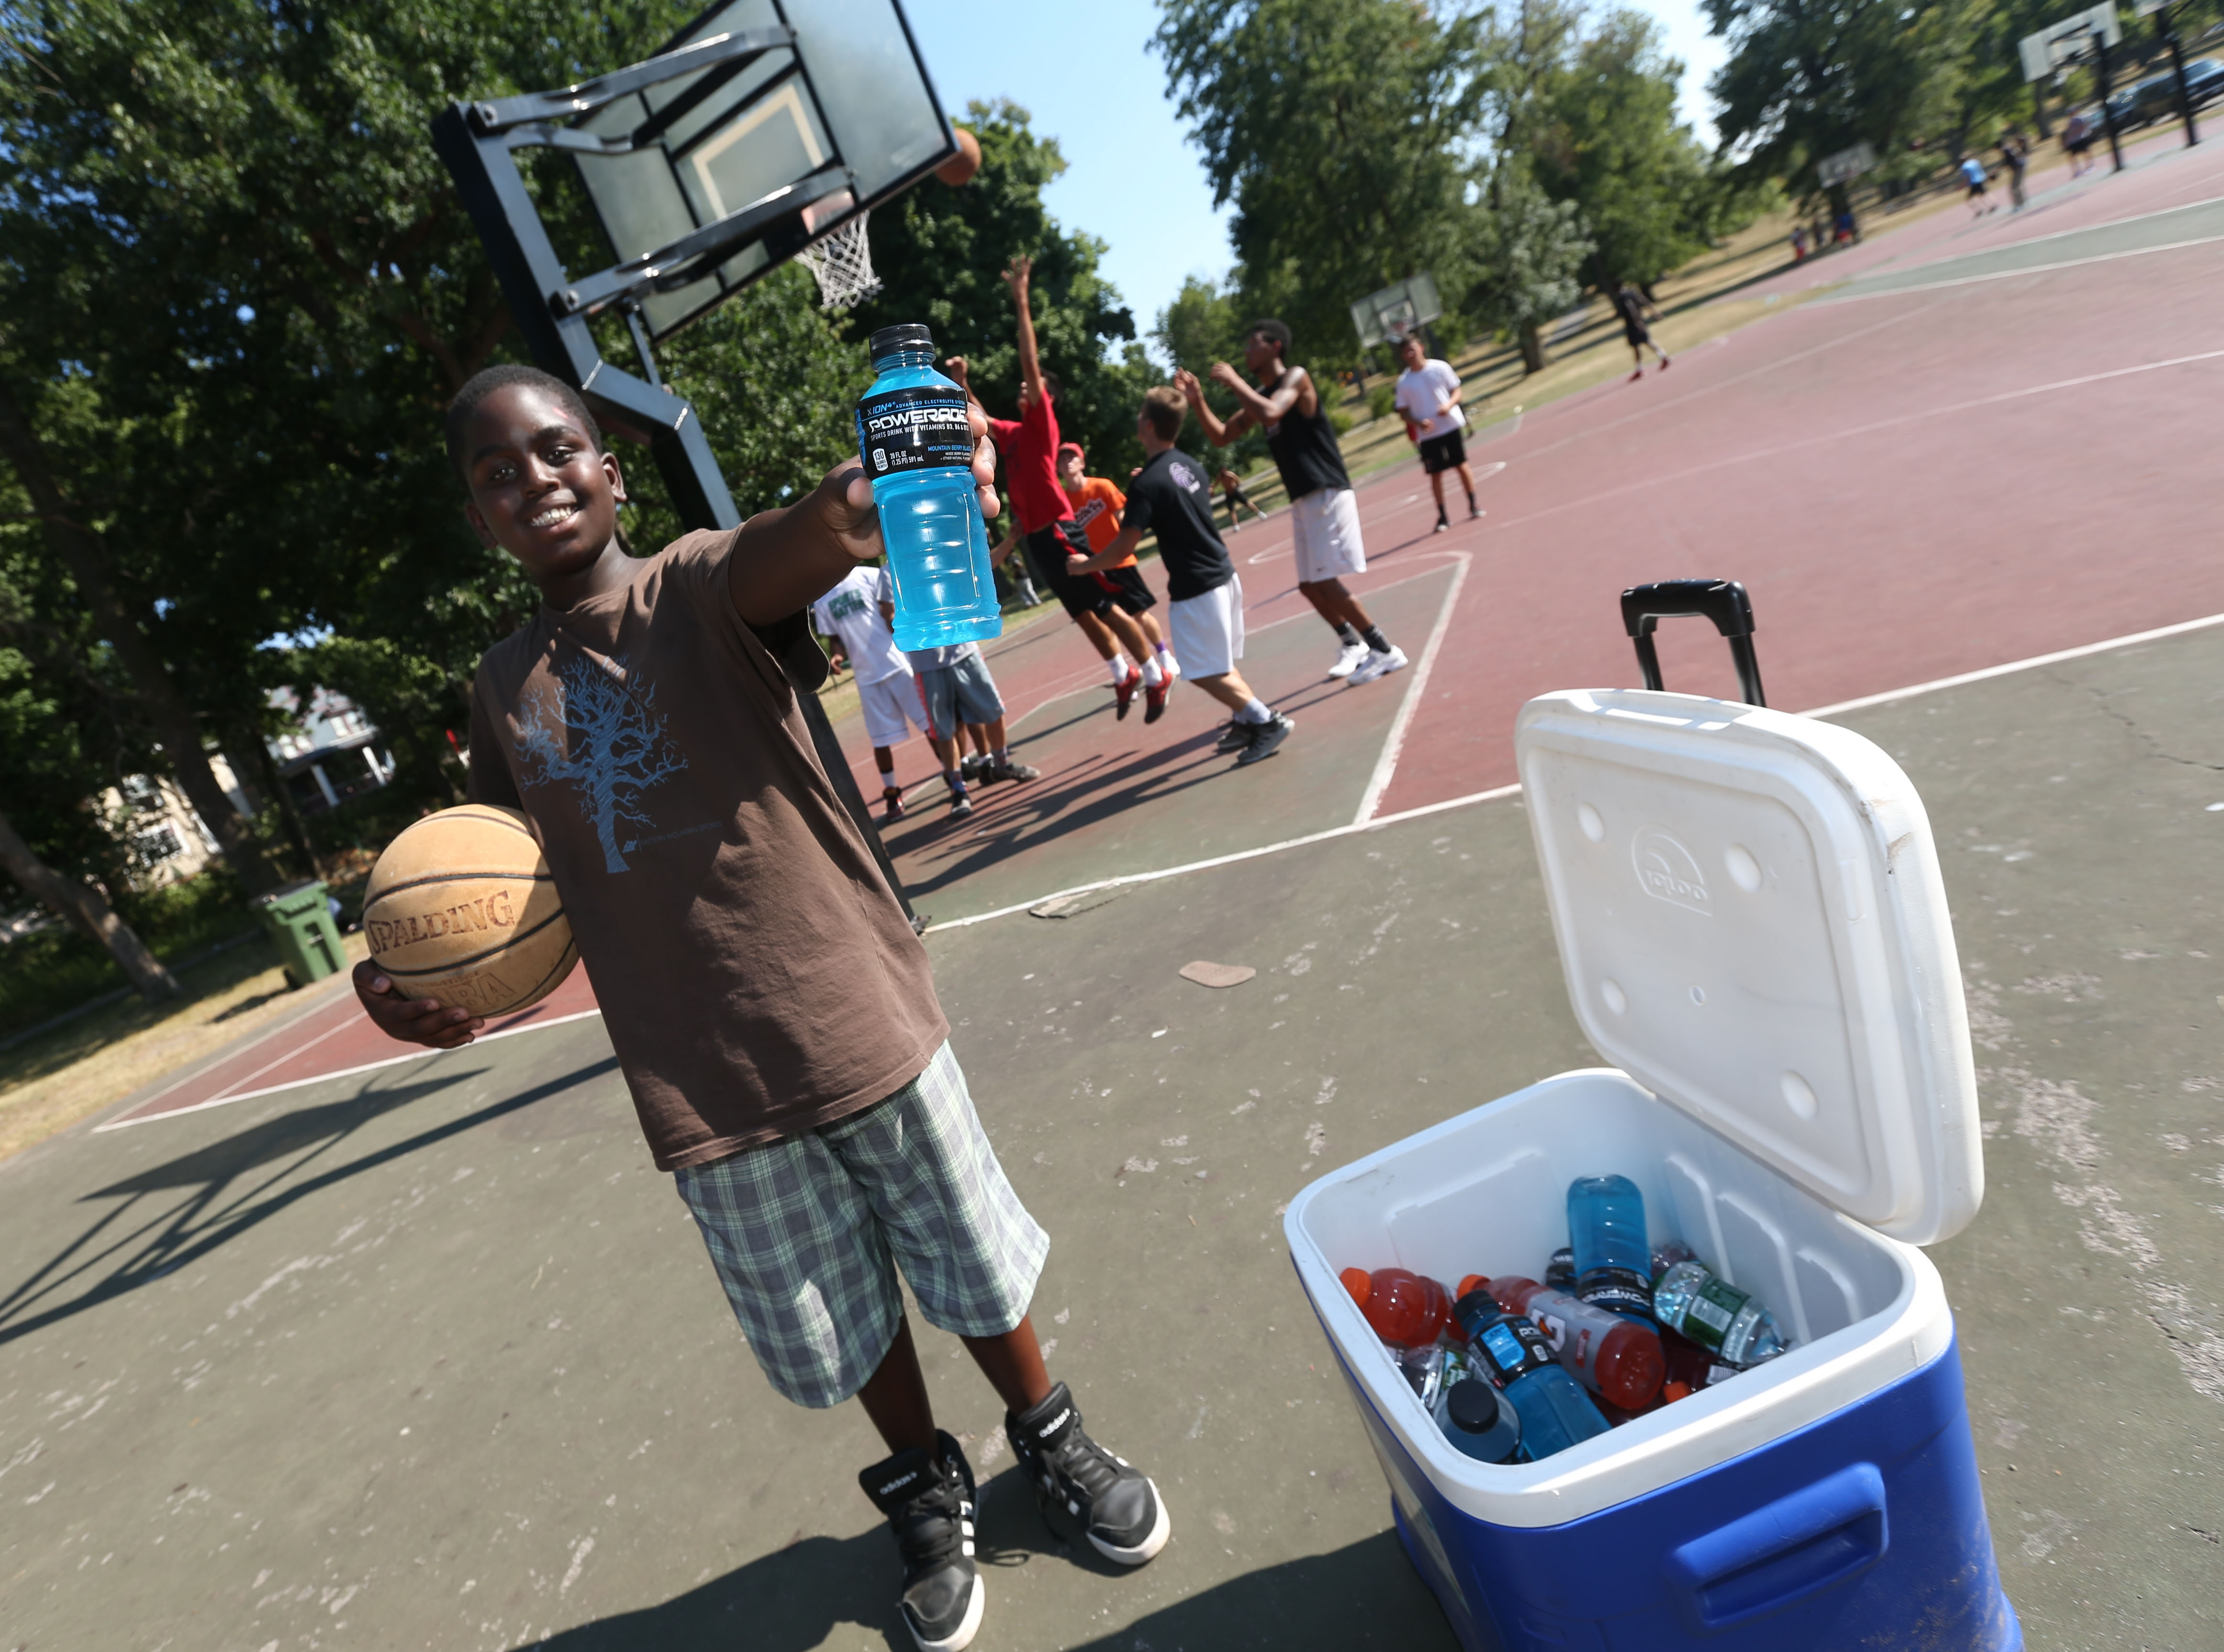 Marcelino Long, 10, of Buffalo sells energy drinks and water to the basketball players all summer long. He's saving up to buy a hover board. (Sharon Cantillon/Buffalo News)